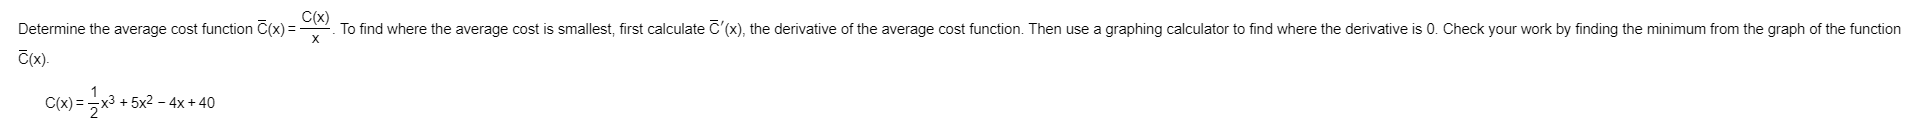 To find where the average cost is smallest, first calculate C'(x), the derivative of the average cost function. Then use a graphing calculator to find where the derivative is 0. Check your work by finding the minimum from the graph of the function C(x) Determine the average cost function C(x) C(x) x)=x3 +5x2 - 4x+ 40